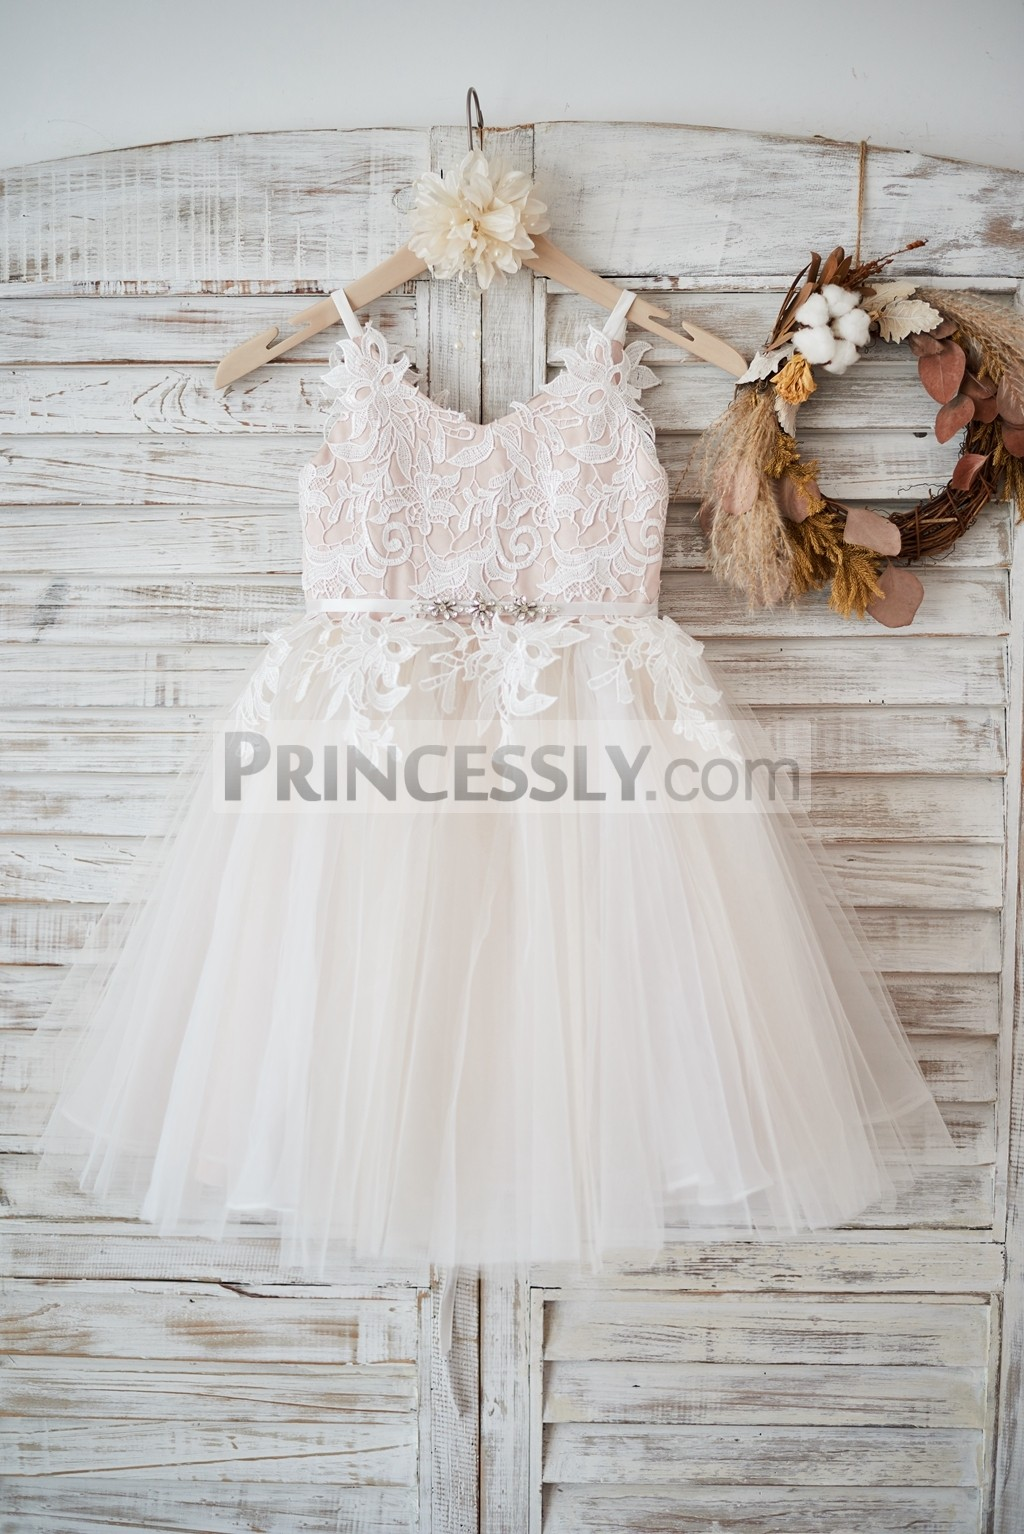 Princessly.com-K1003578-Ivory lace Tulle Spaghetti straps Wedding Flower Girl Dress with Beaded Belt-31